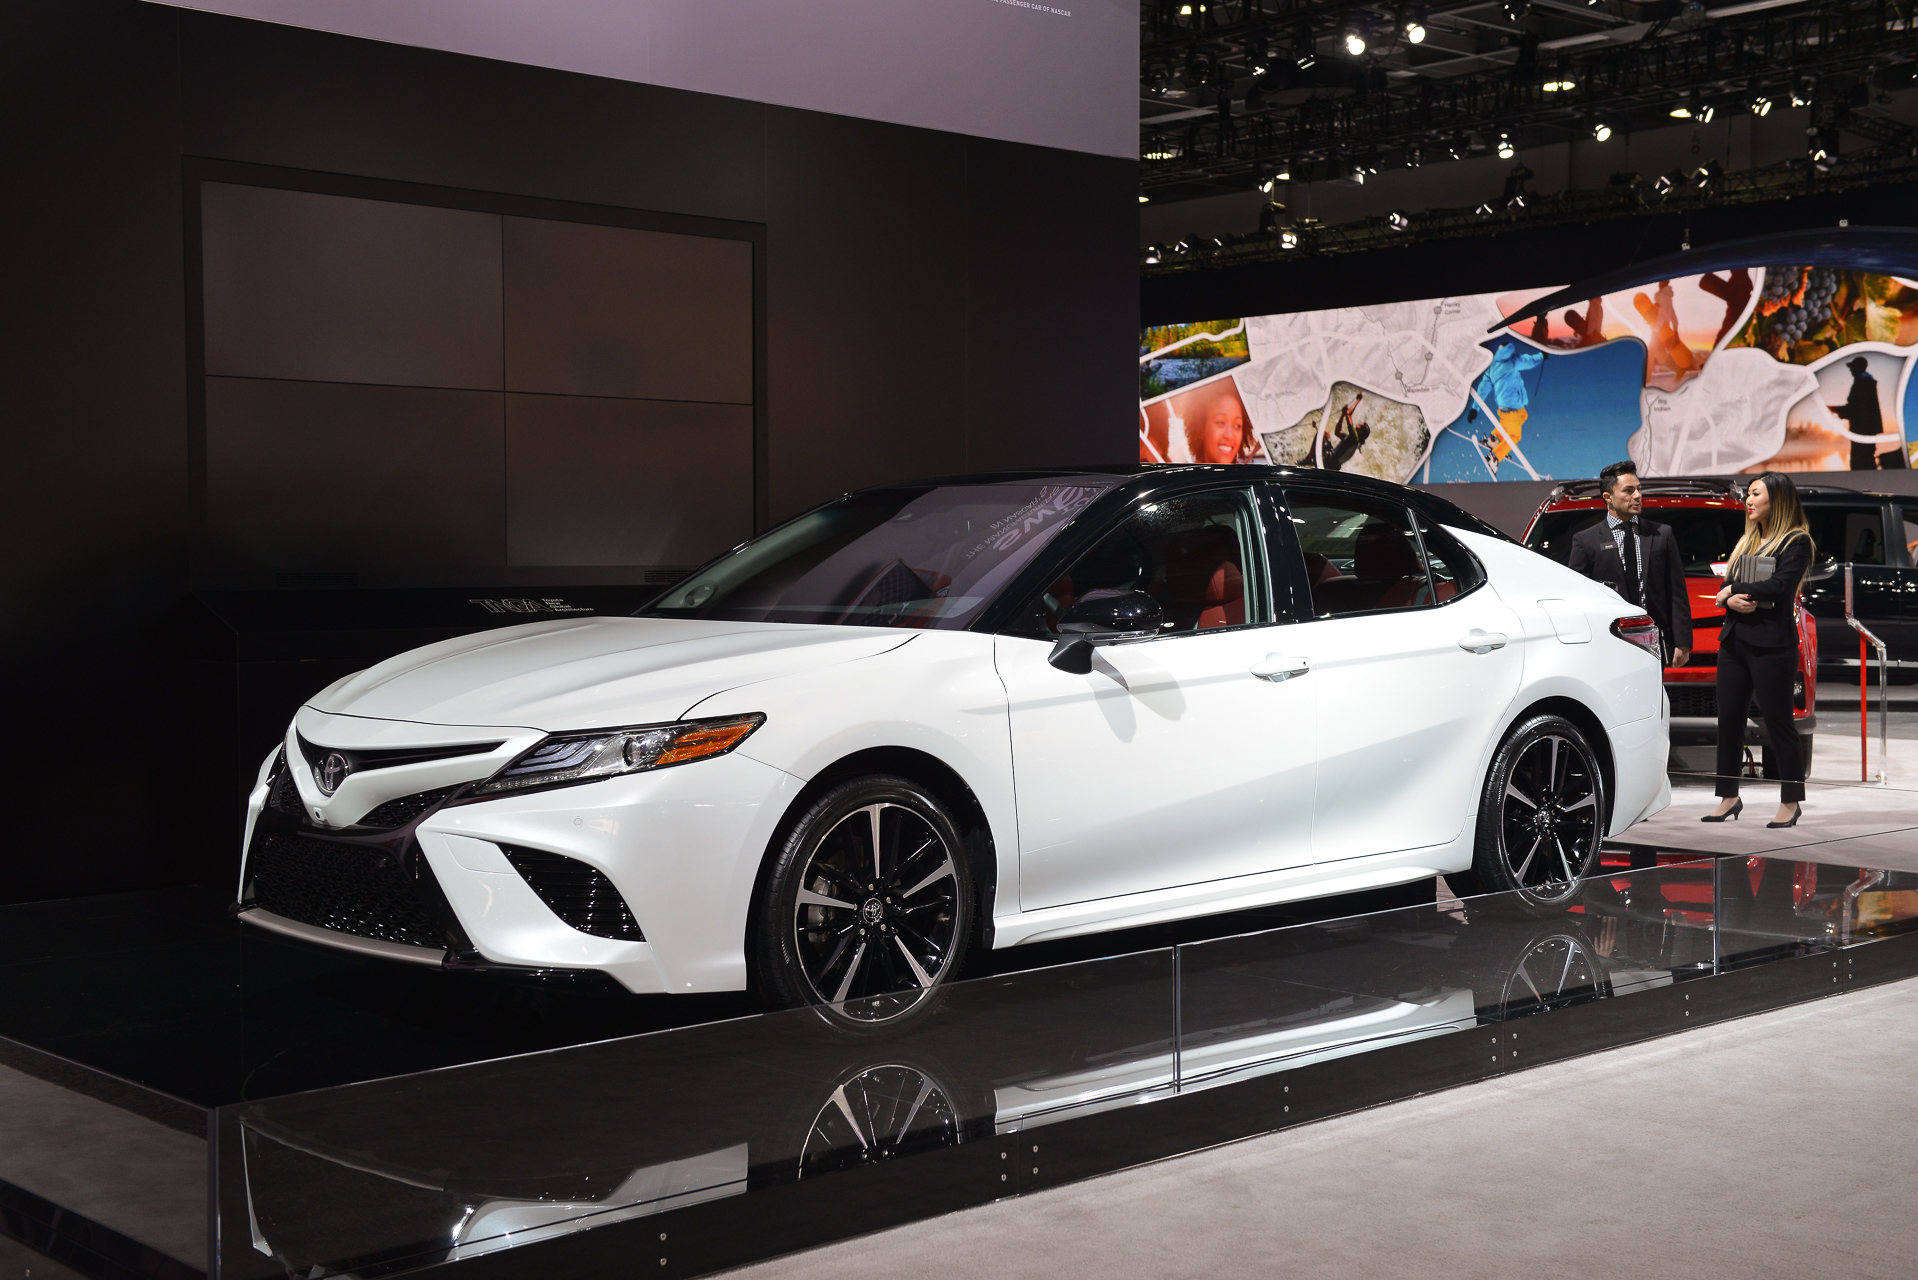 2018 Toyota Camry video preview